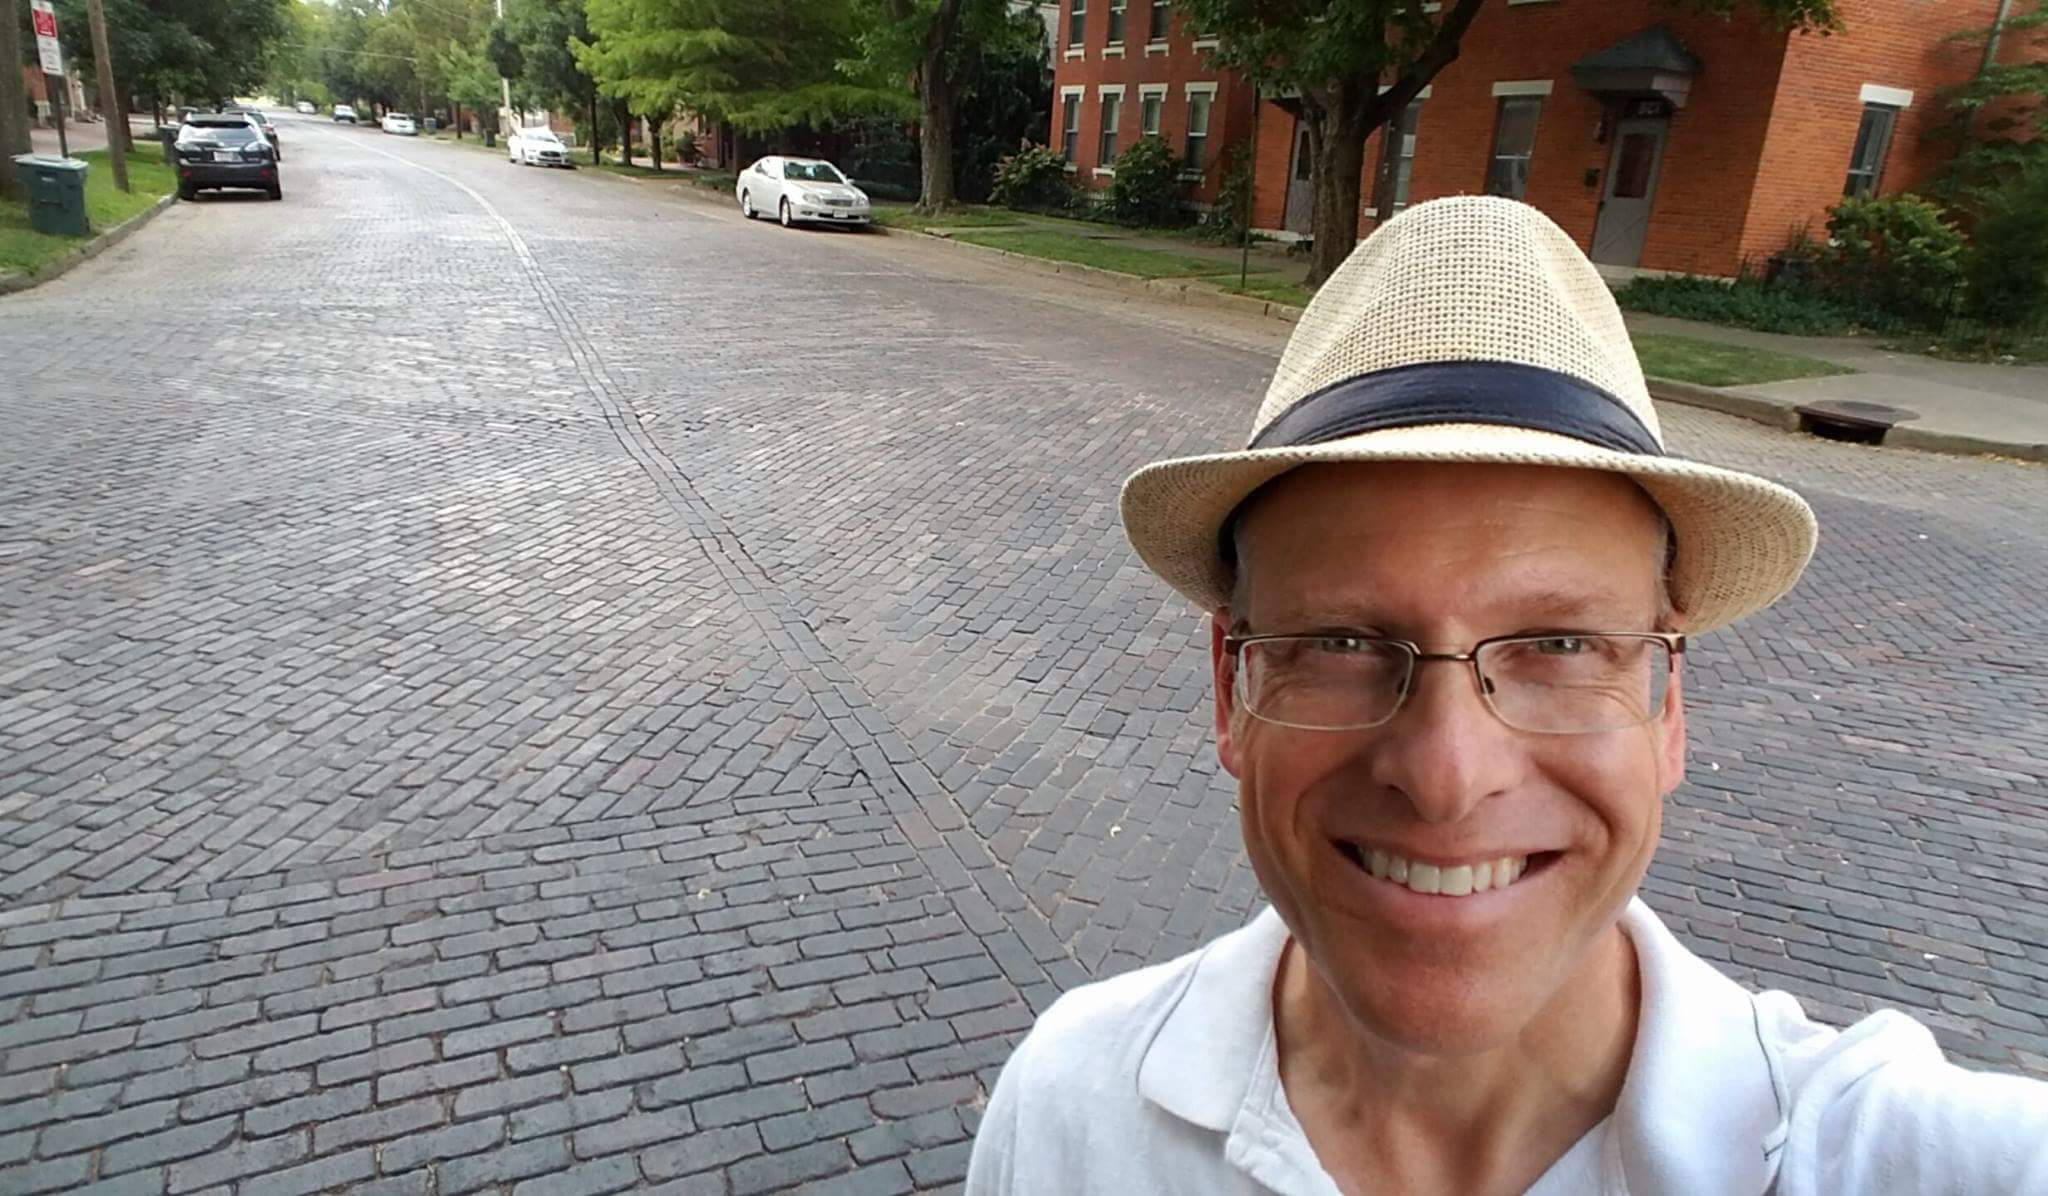 Site author Robin Williams in front of one of the several impressively preserved brick intersections in the German Village neighbourhood of Columbus, Ohio, a city that boasts more preserved streets than any other city in the country (with the possible exception of St. Petersburg, Florida).